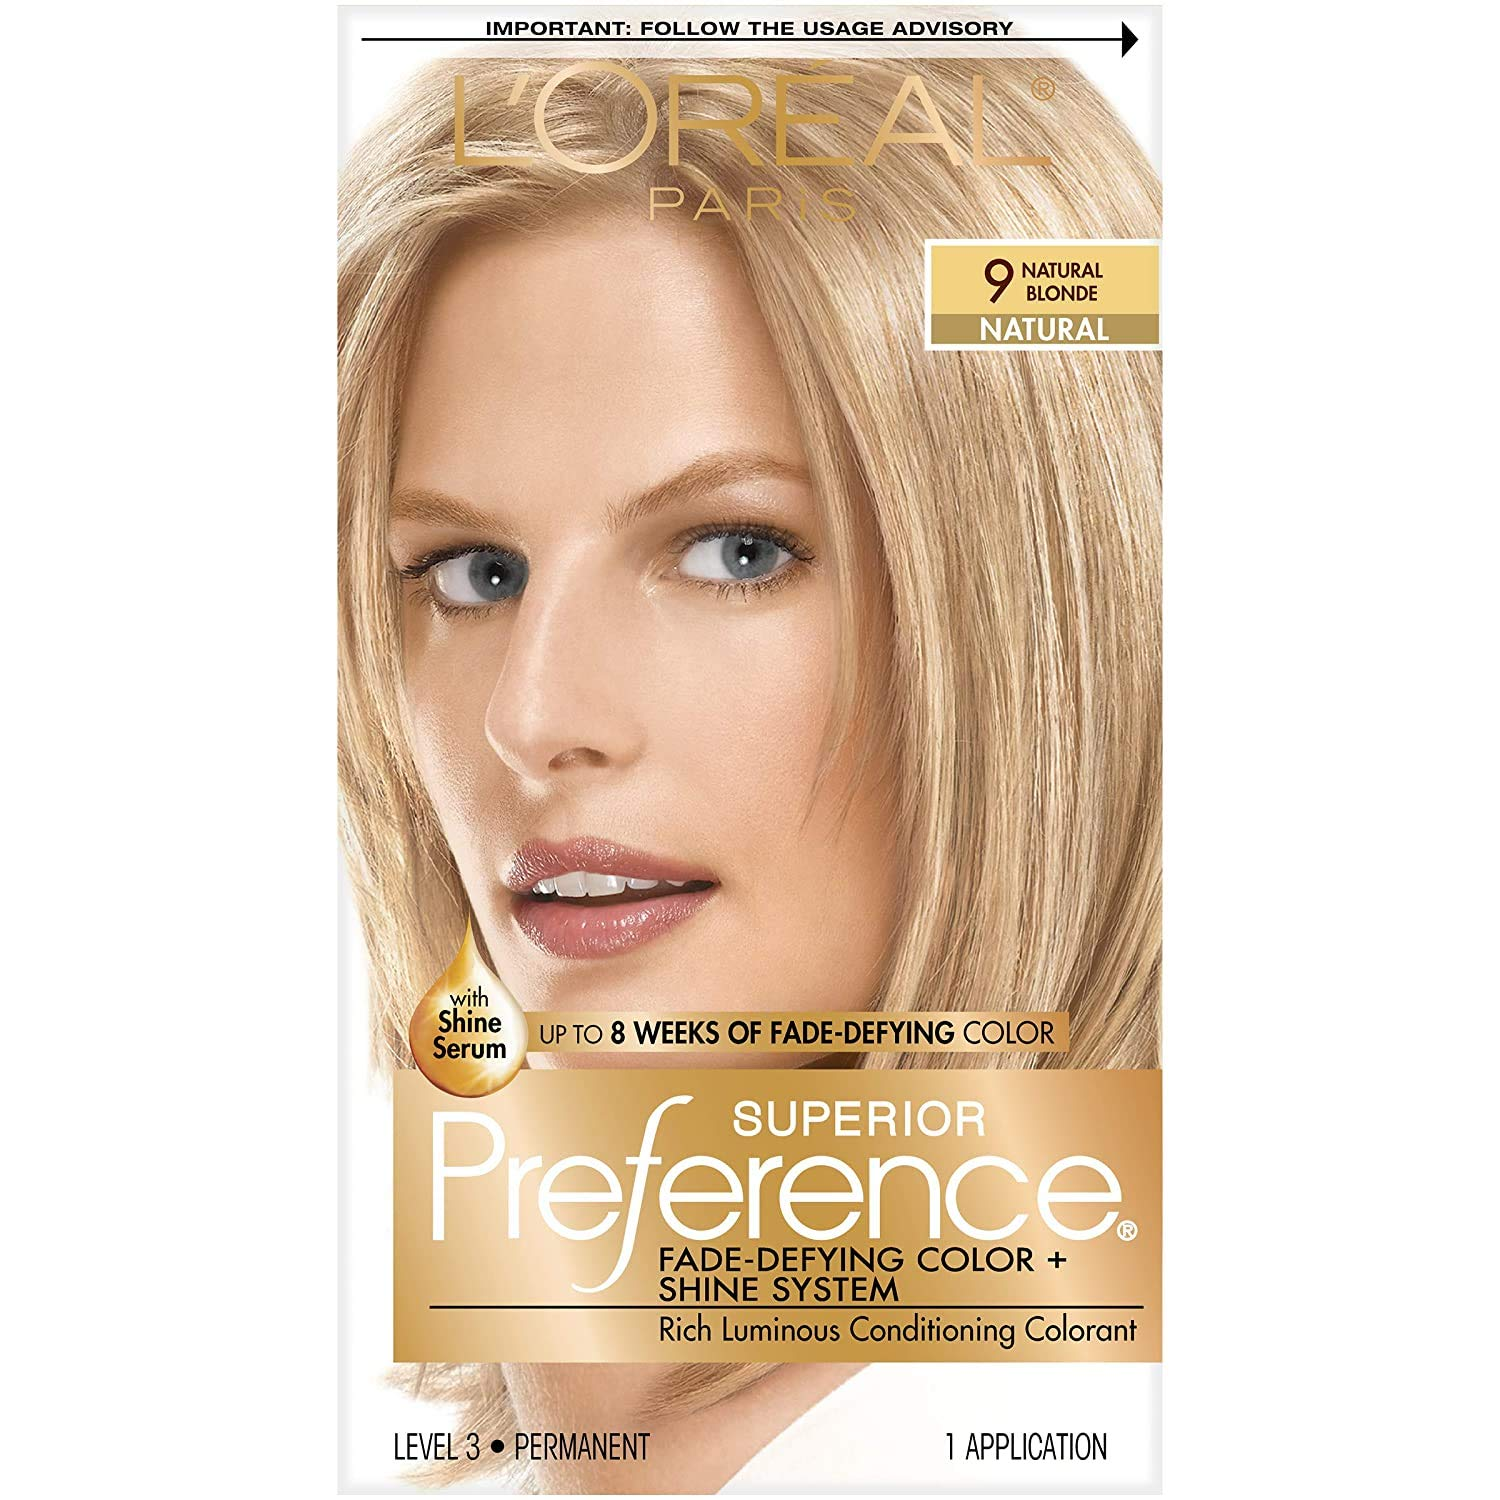 L'Oreal Paris Superior Preference Fade-Defying + Shine Permanent Hair Color, 9 Natural Blonde, Pack of 1, Hair Dye